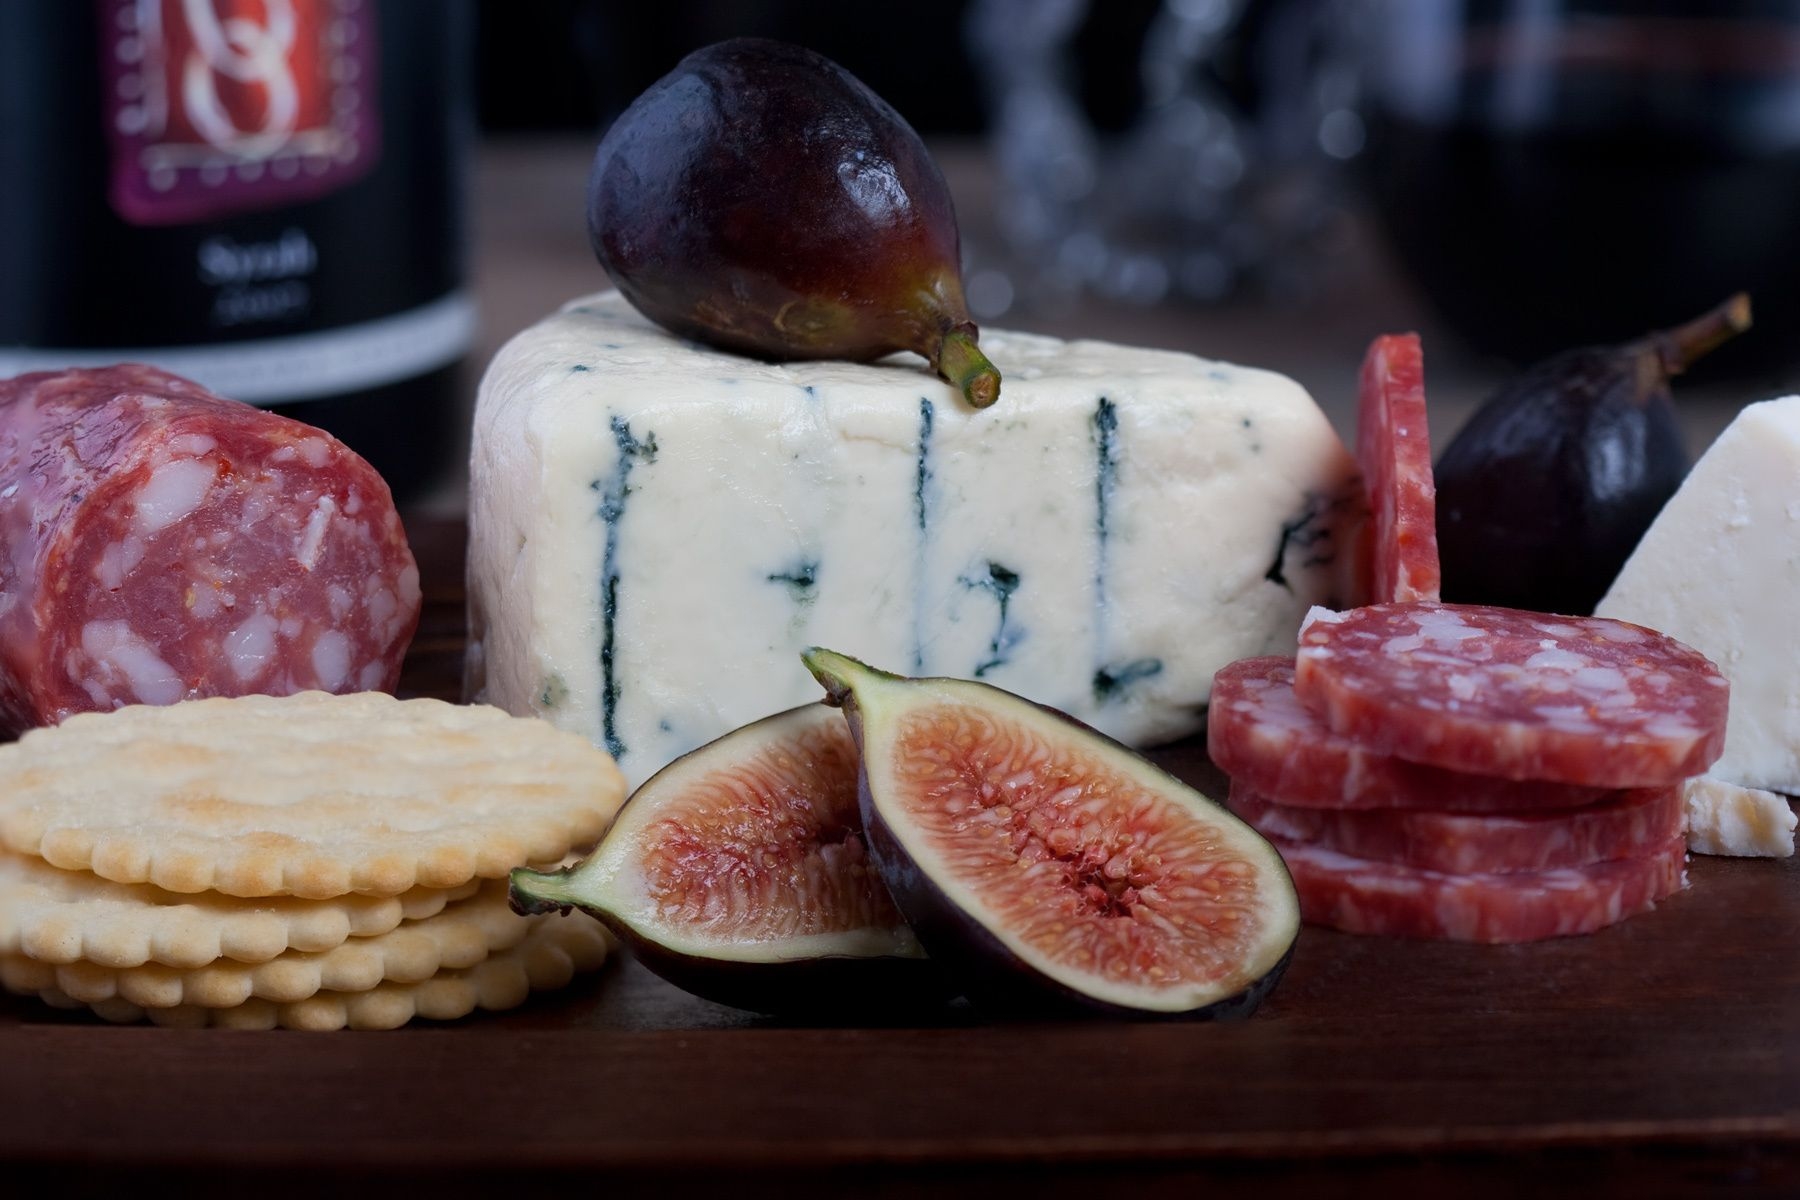 figs, blue cheese, crackers and salami